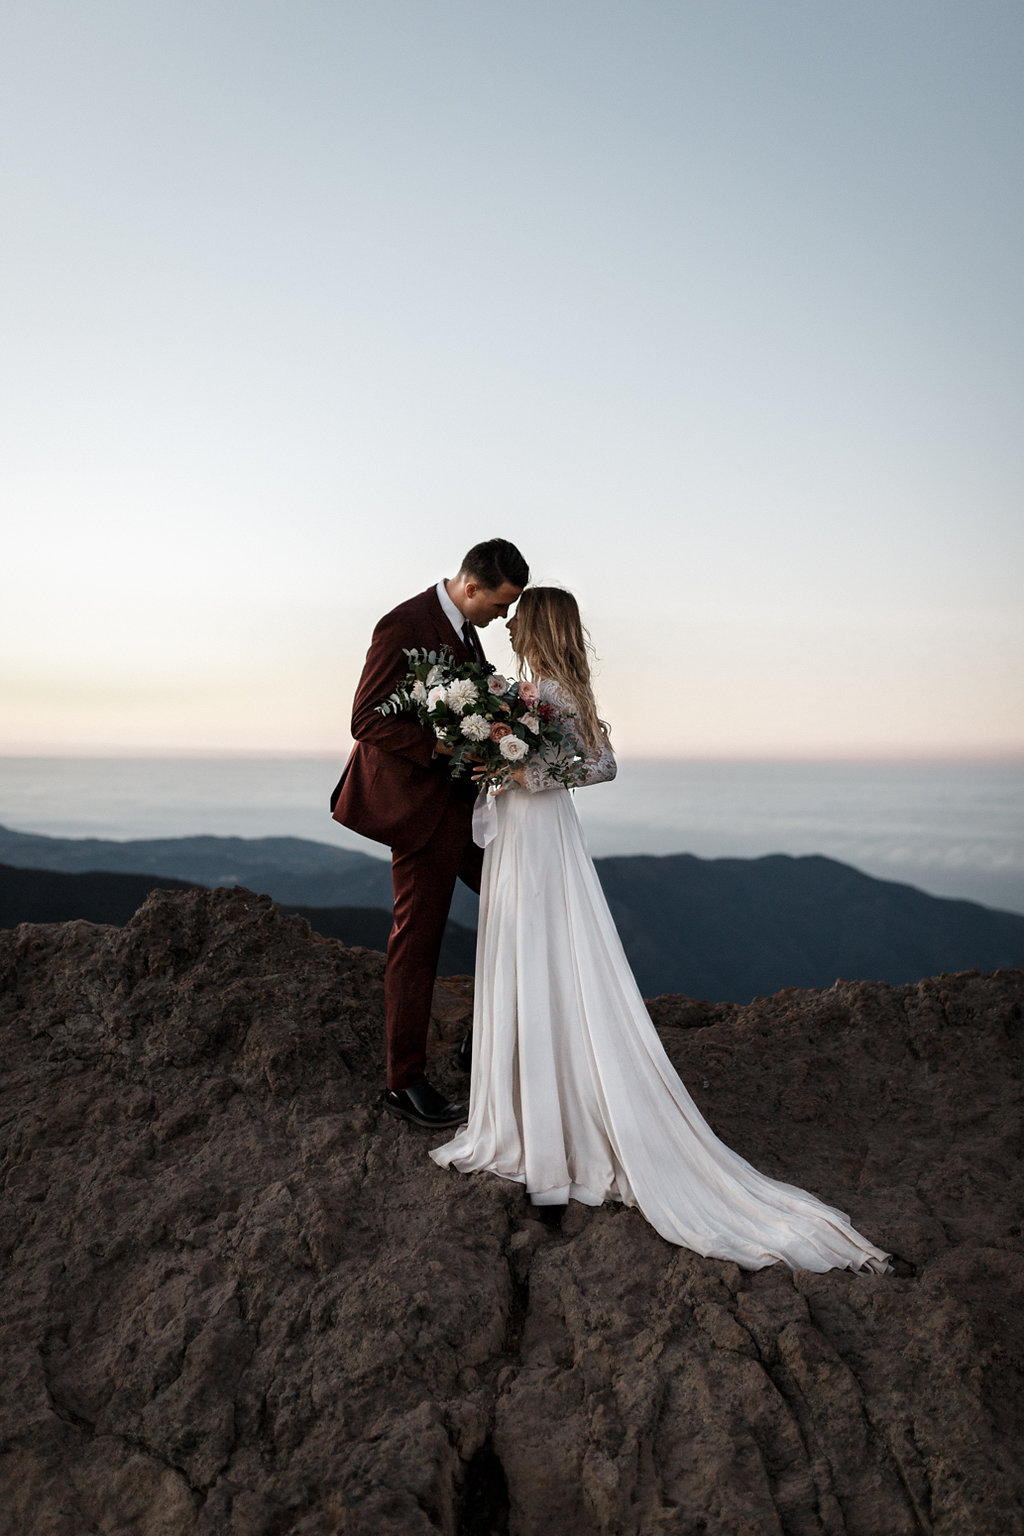 Sunrise Malibu Elopement | Malibu Mountains Weddings | Compass Floral Design | Wedding Florist in San Diego and Southern California | Devin Jenkins Photography #elopement   #elopementinspiration   #wedding   #weddinginspiration   #bohowedding   #bohemianwedding   #weddingceremony   #outdoorceremony  #sandiegoweddingflorist   #romanticweddingflowers   #bridalstyle   #weddingfashion